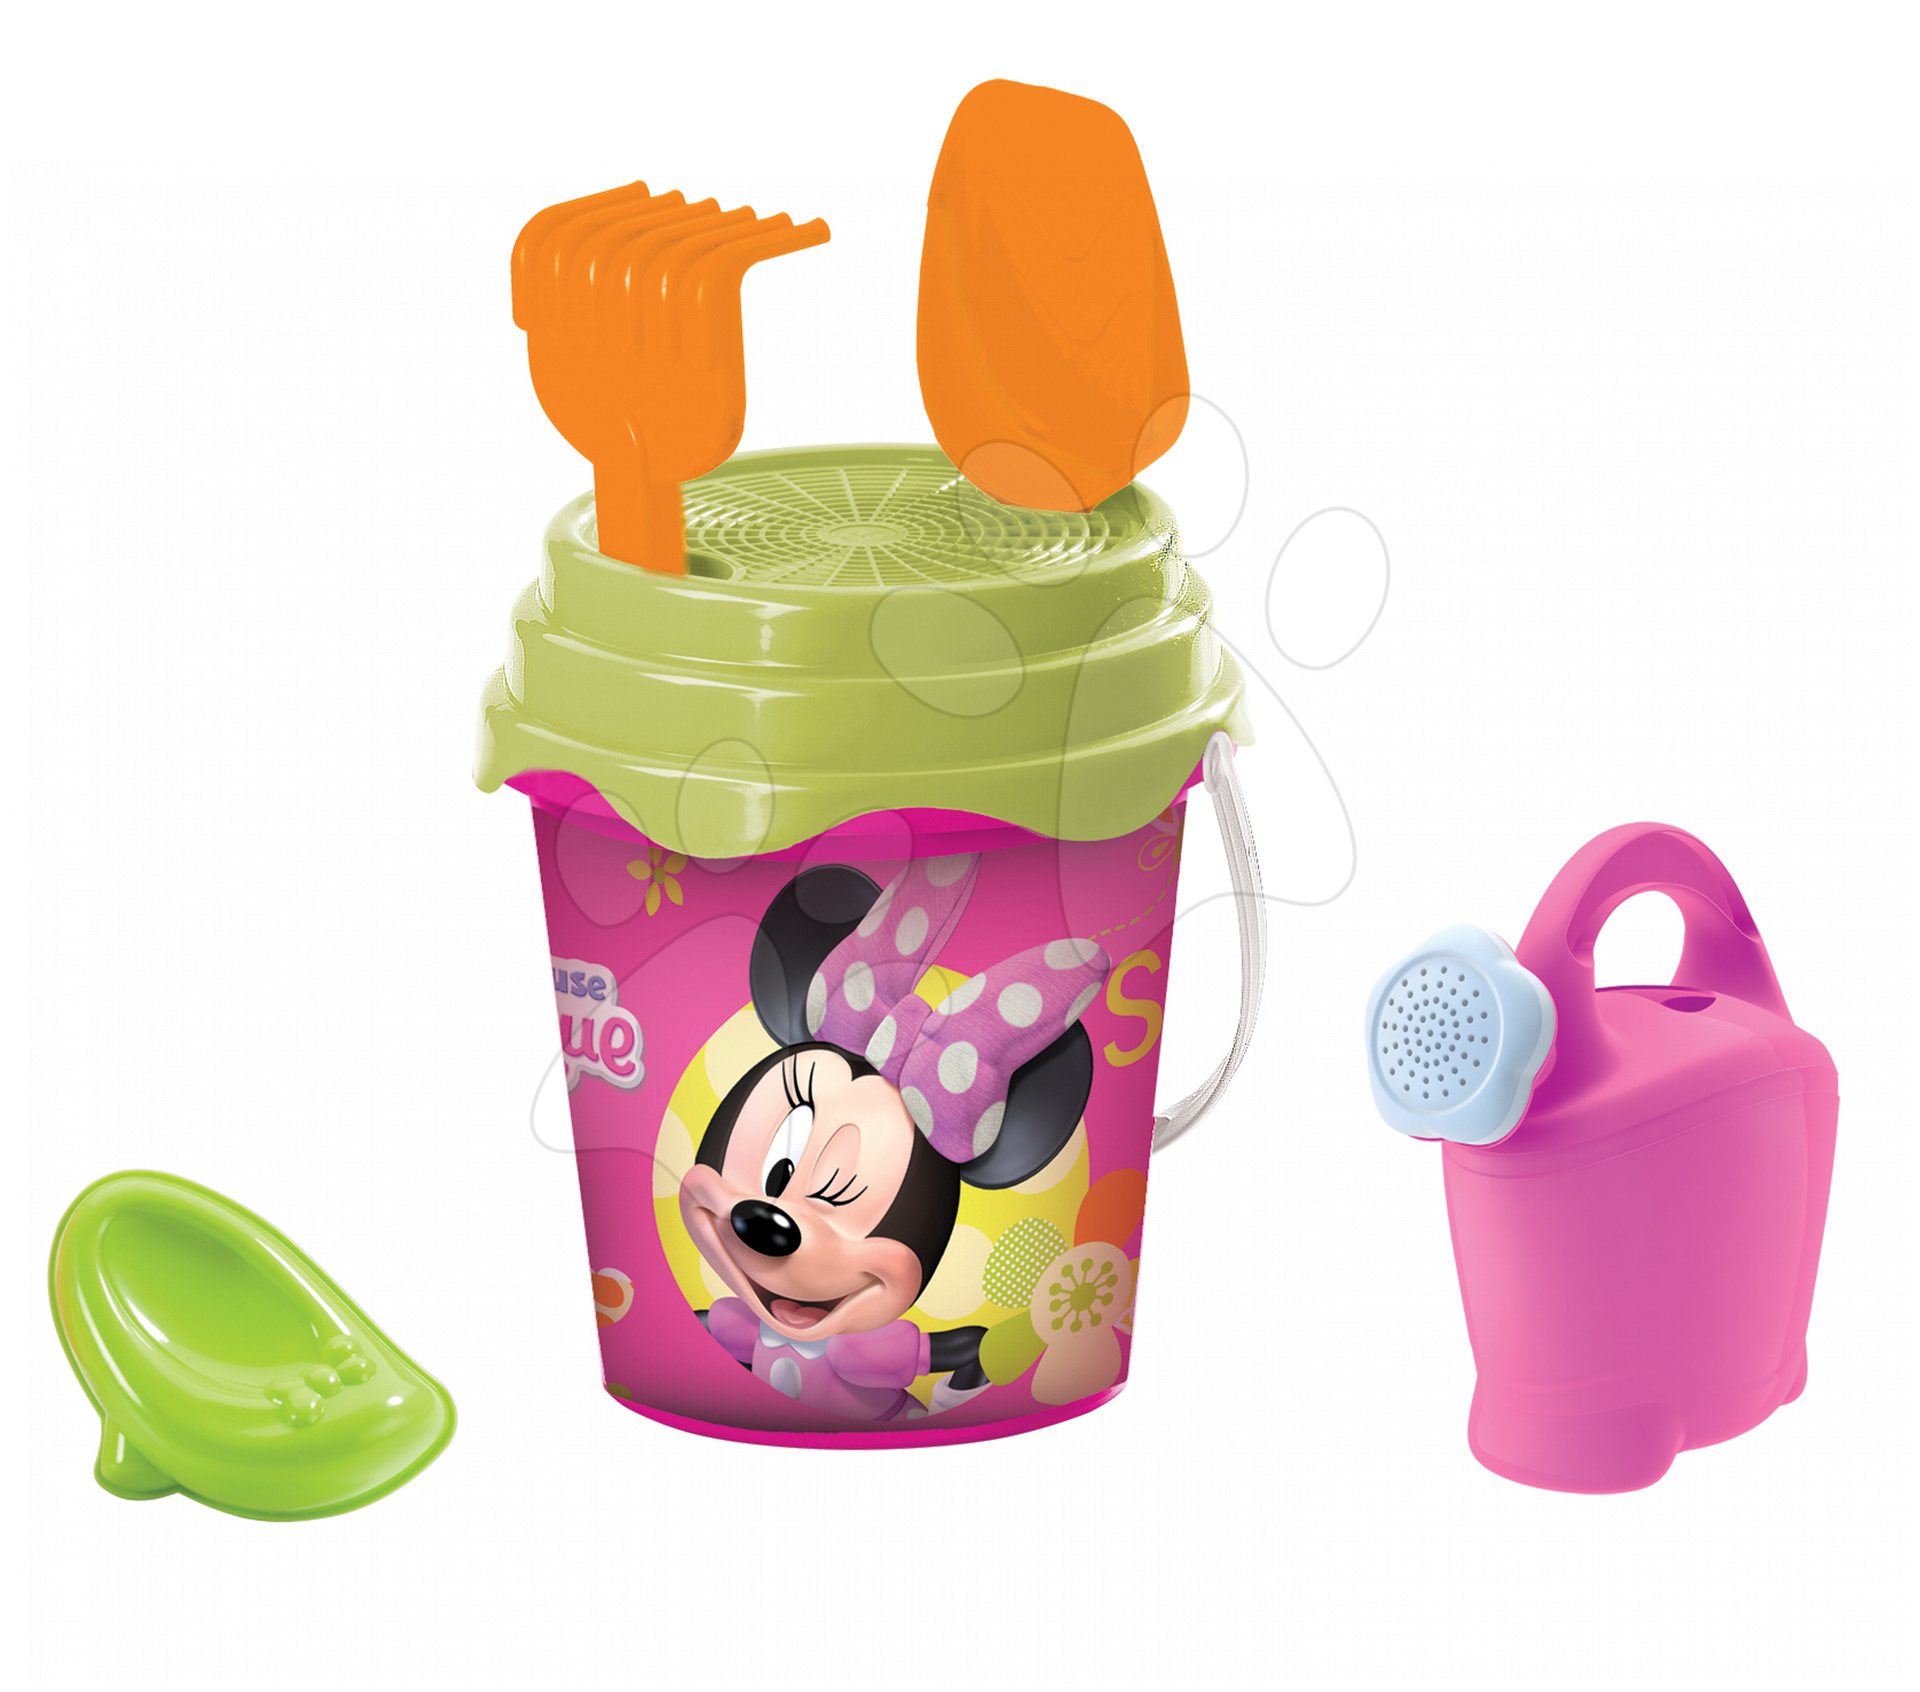 Vedro set s krhlou Minnie Mouse Mondo 5 ks, 19 cm